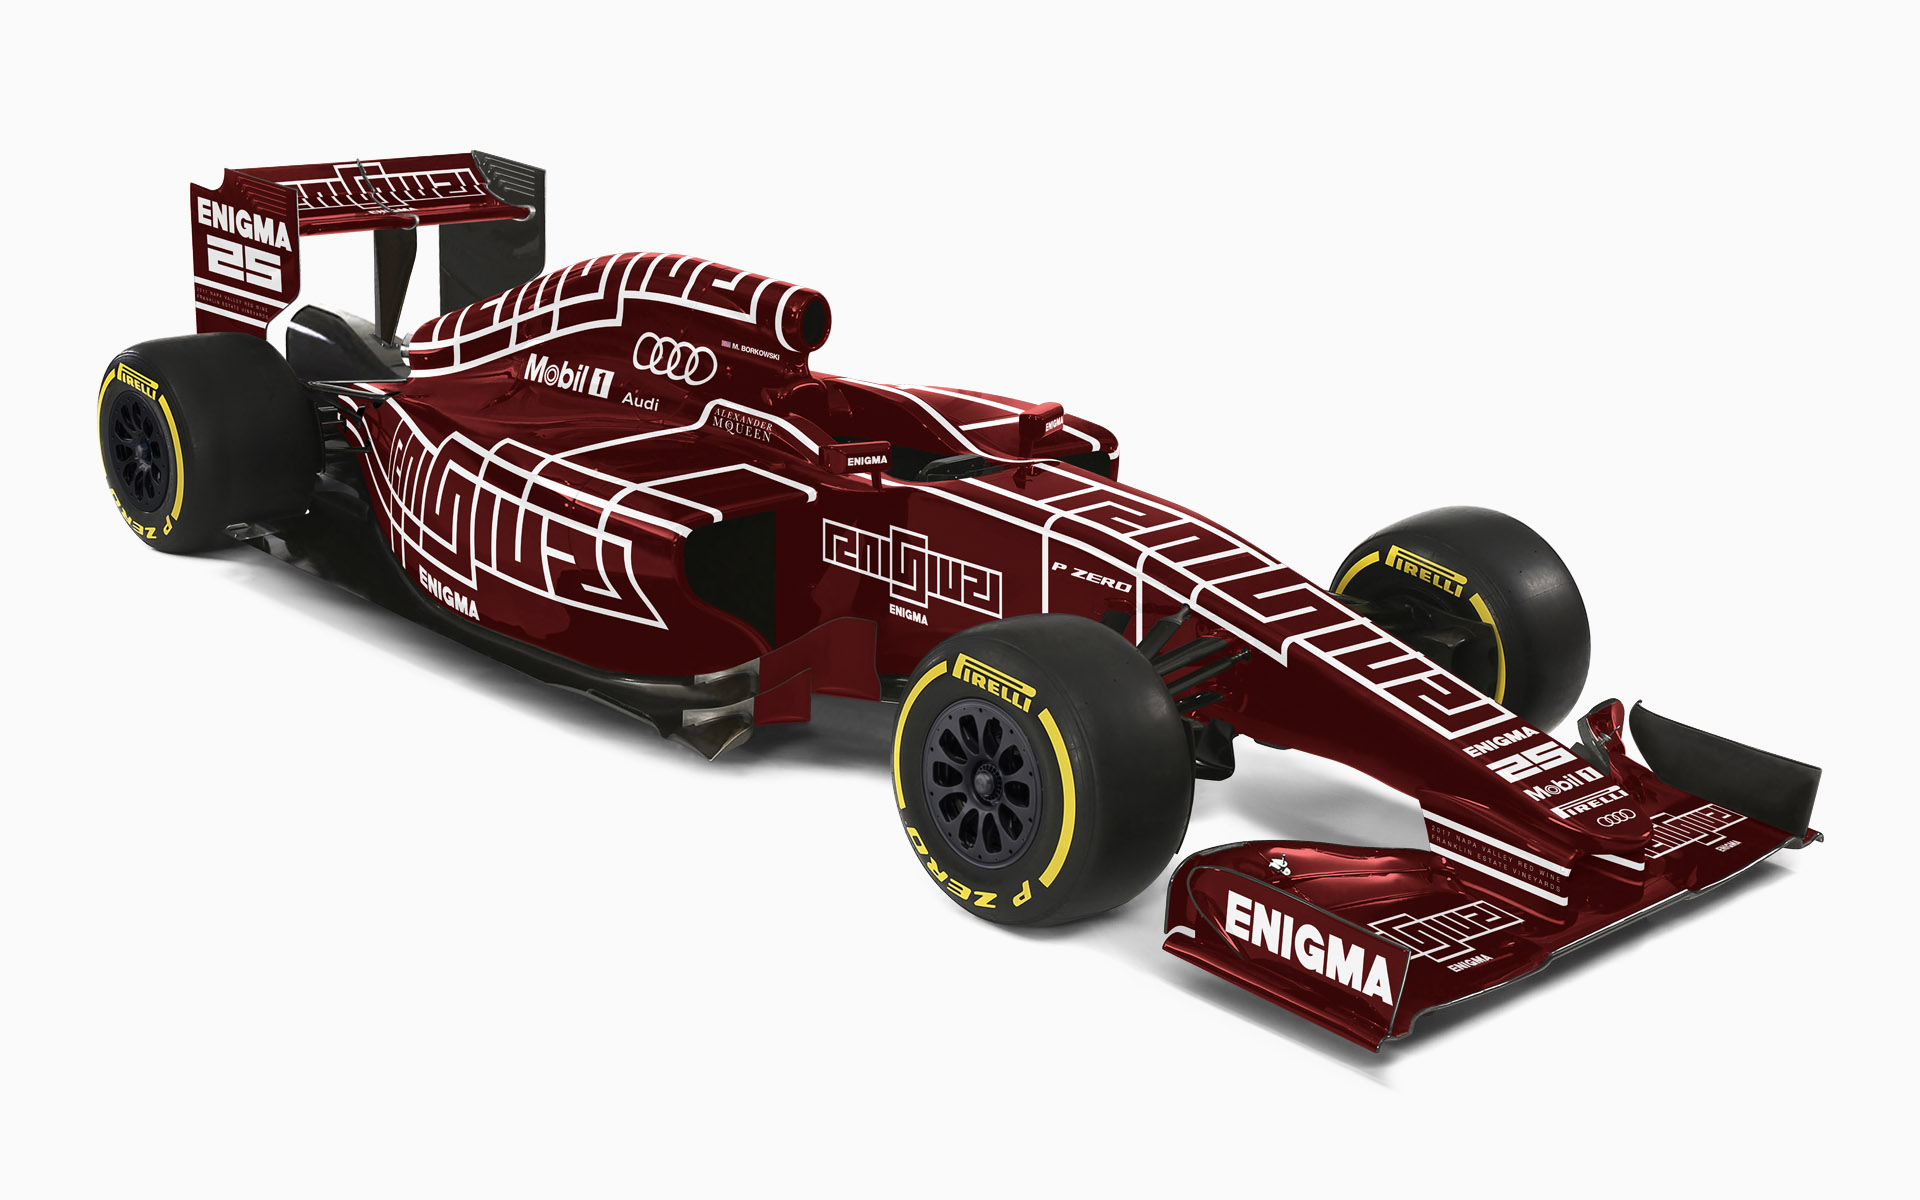 Franklin Estate Vineyards Enigma F1 Livery Visualization